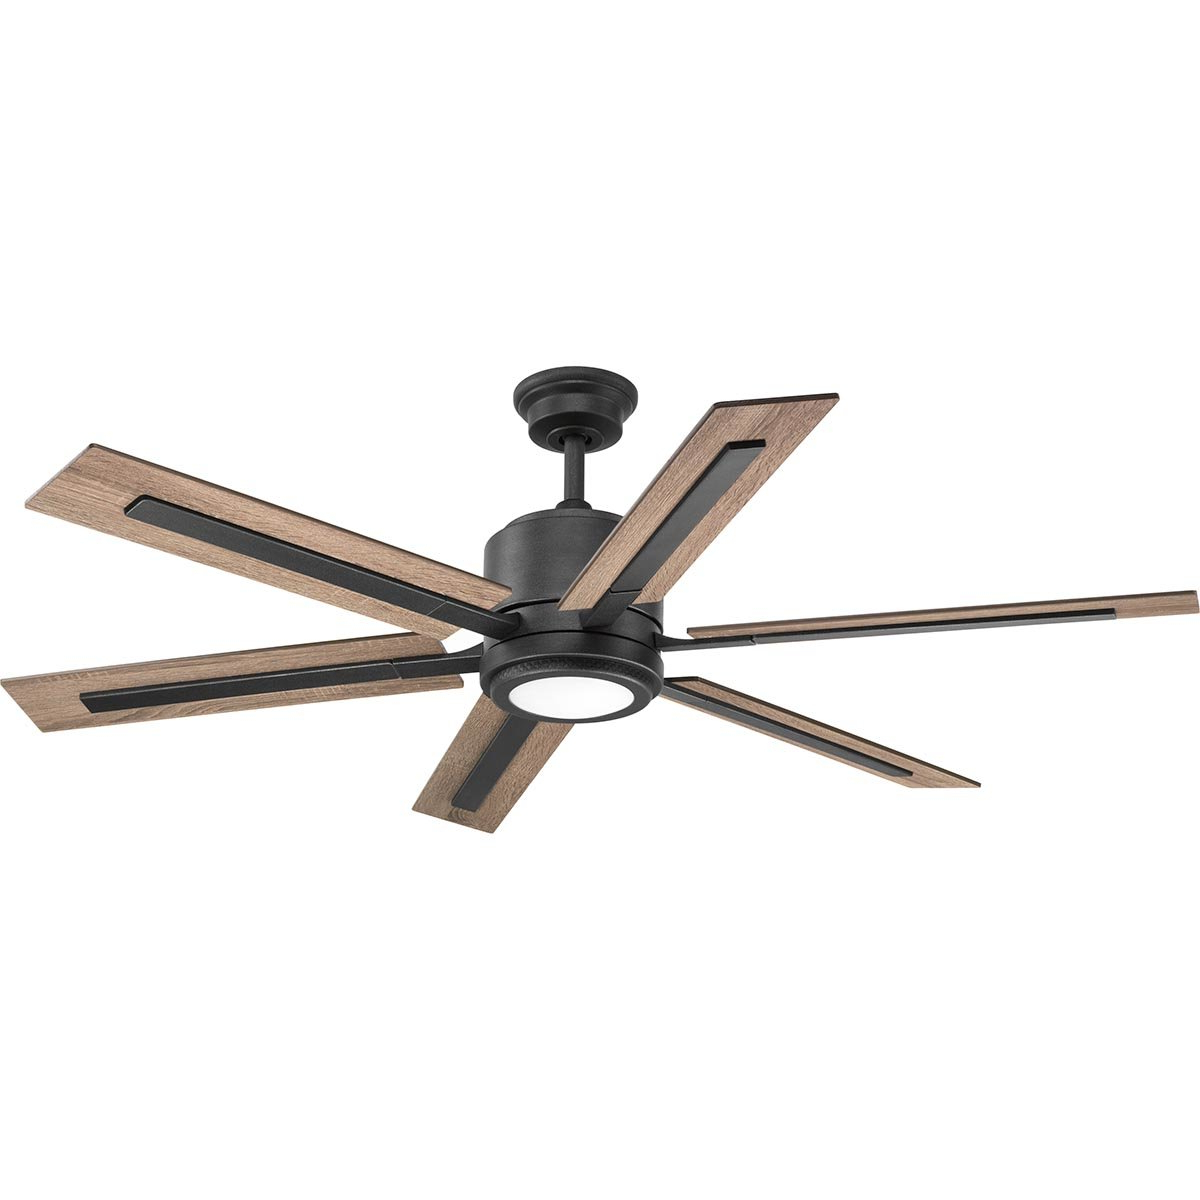 Valerian 5 Blade Ceiling Fans Throughout Preferred 6 Or More Blade Ceiling Fans (Gallery 9 of 20)